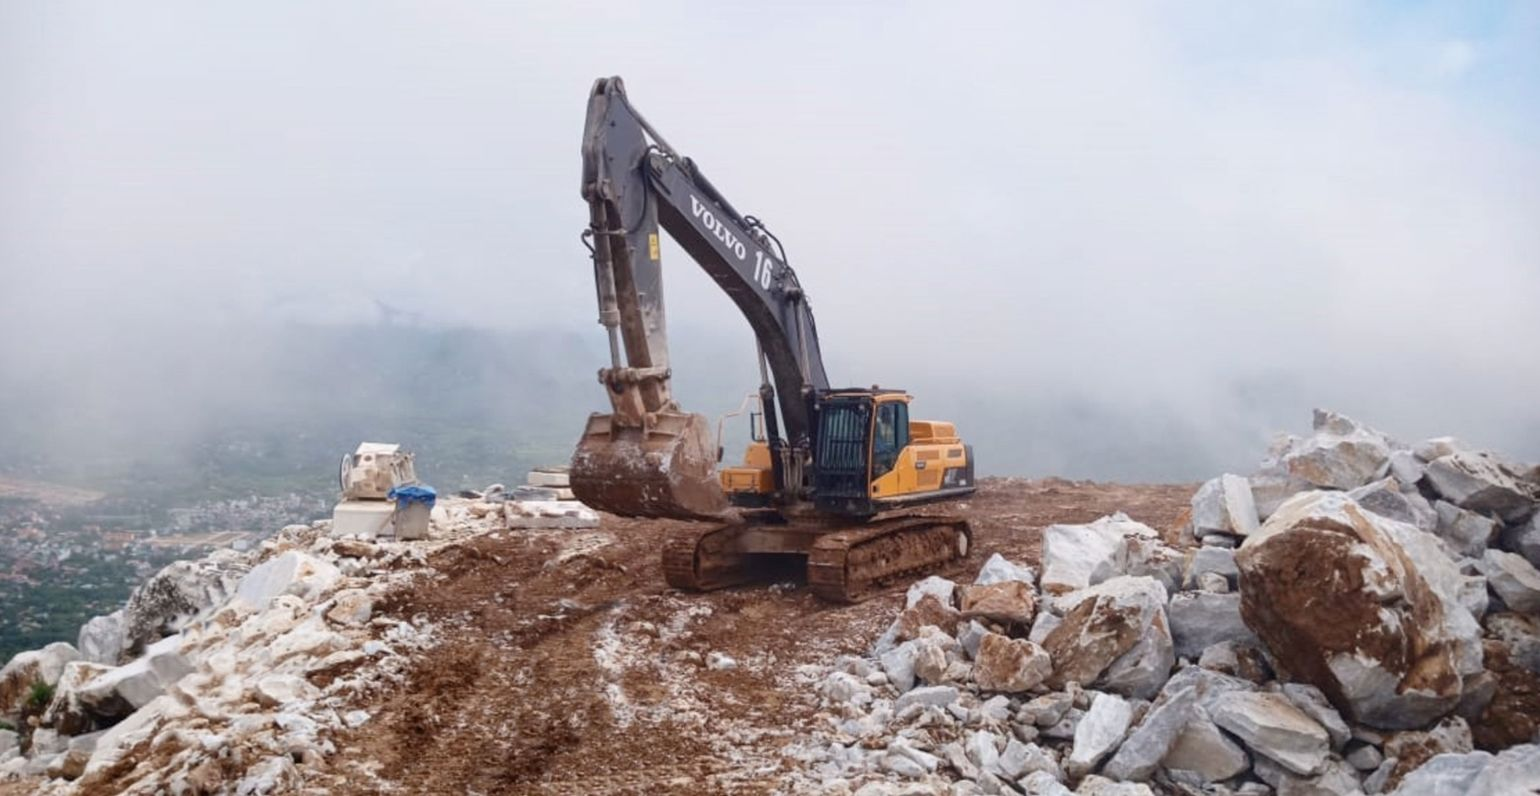 A EC480DL crawler excavator in operation at the Yen Bai Province marble quarry